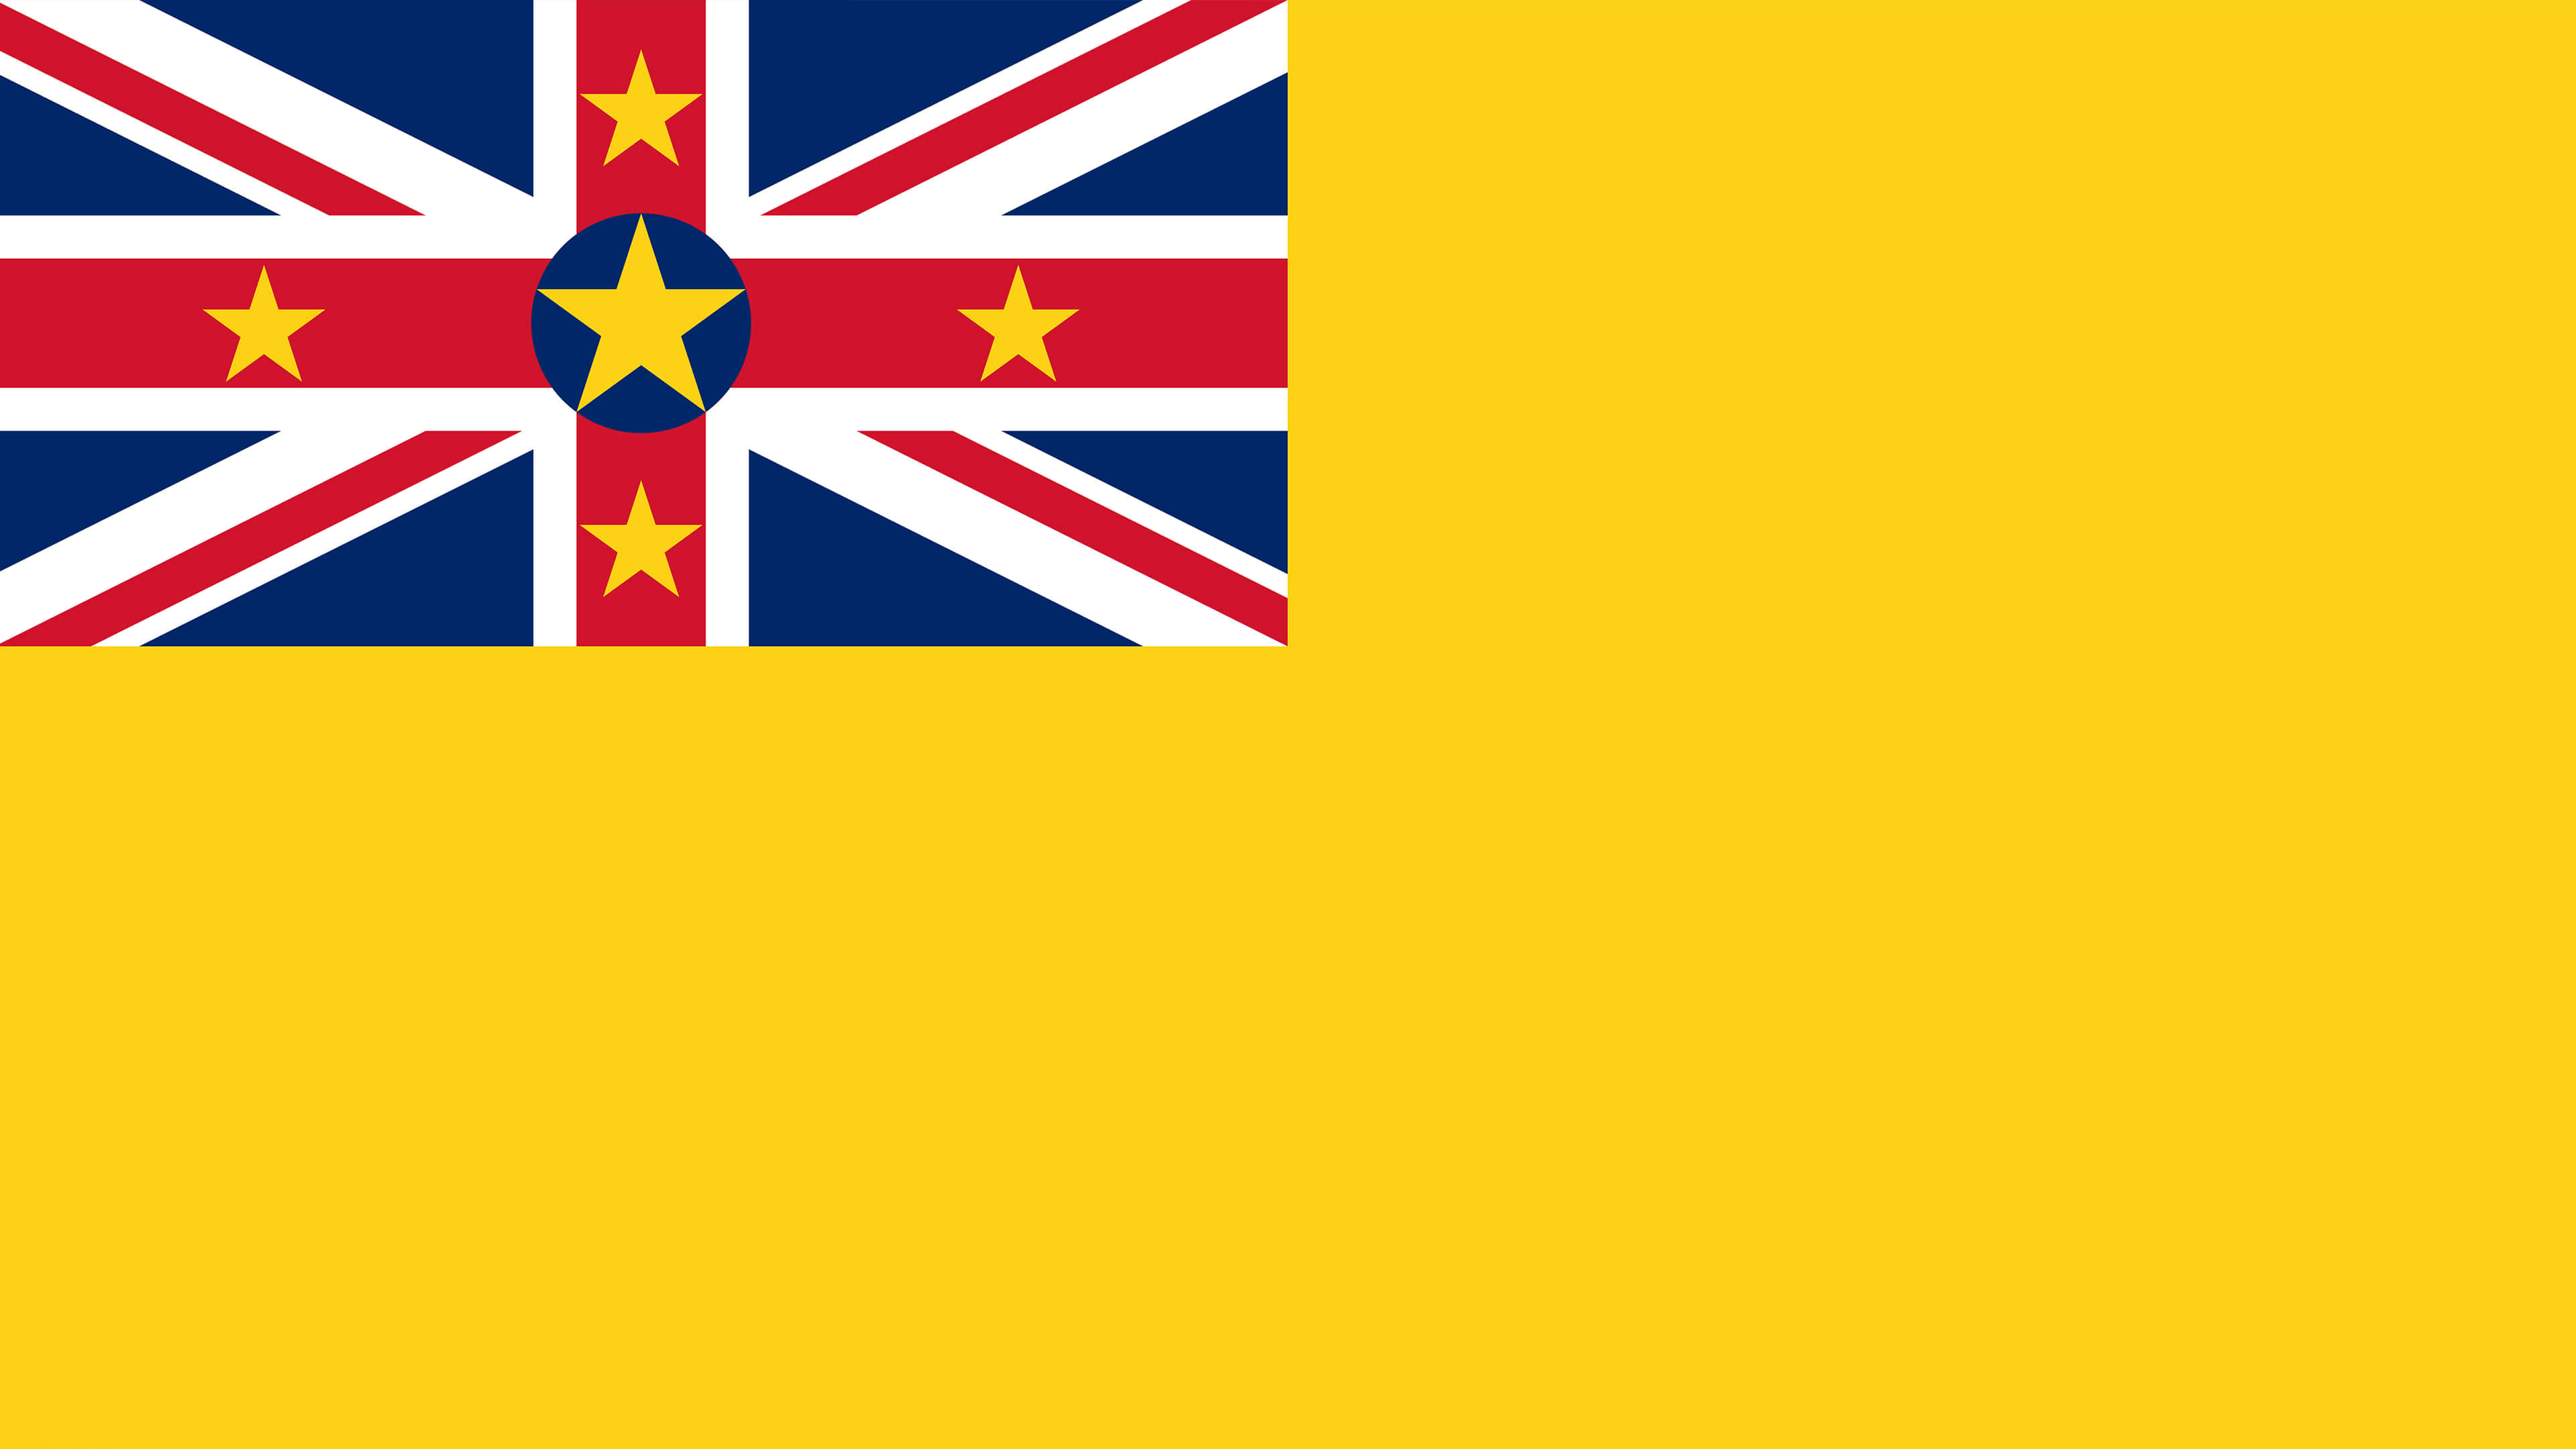 niue flag uhd 4k wallpaper